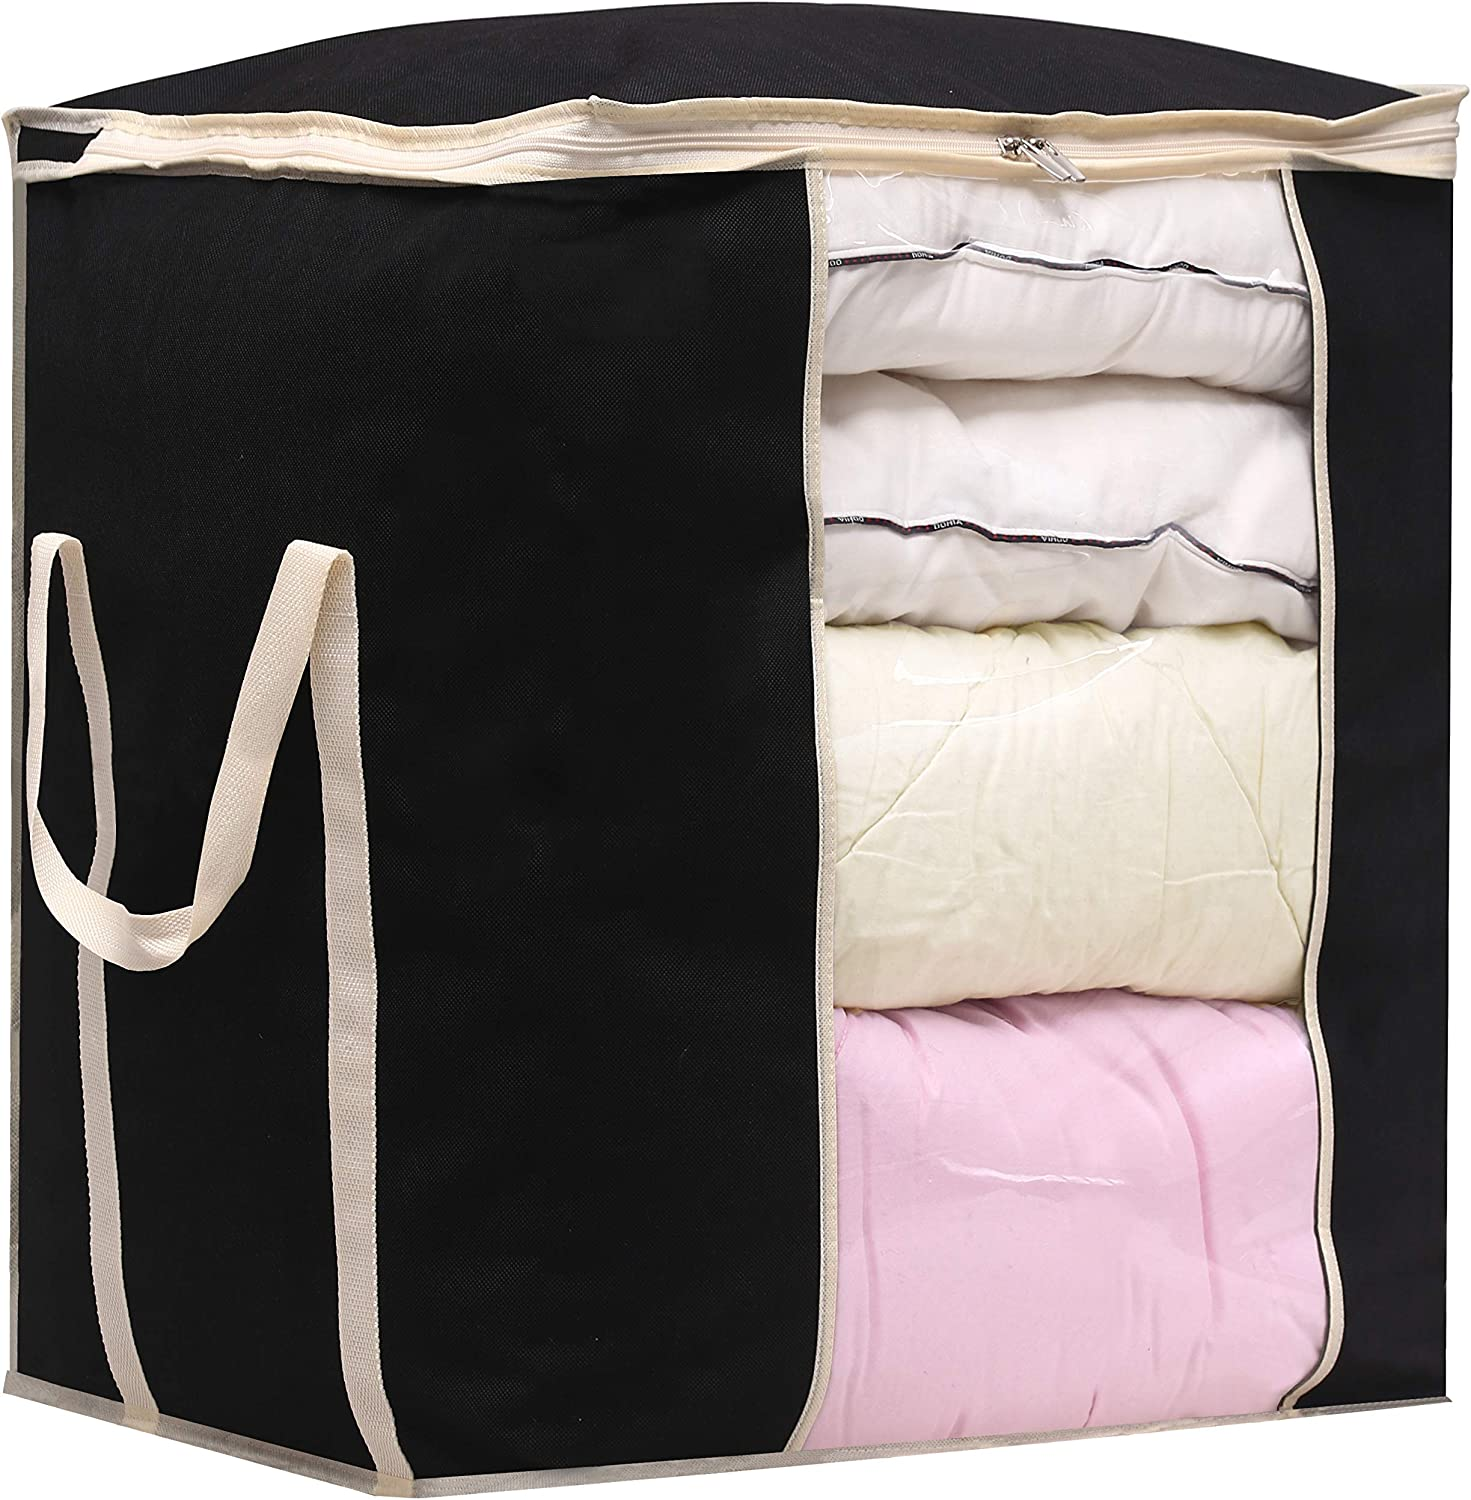 MISSLO Jumbo Comforters Storage Bag 120L for Blankets Clothes Sweaters Beddings Organizer with Reinfored Handles, Black